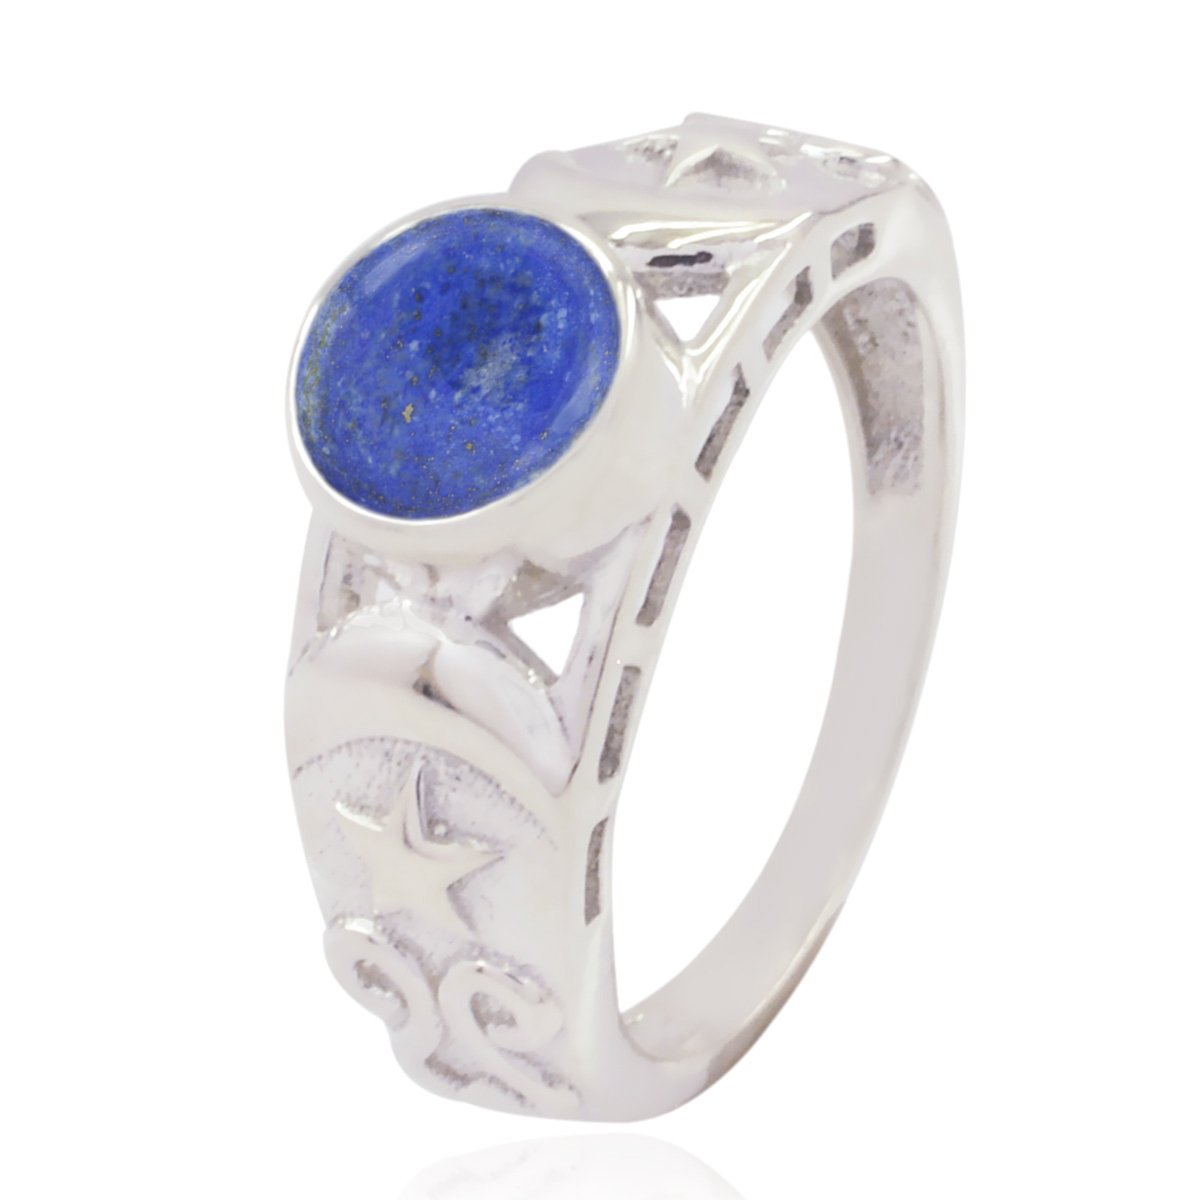 Faishon Jewelry Nice Item Gift for Friendship Day Great Ring 925 Sterling Silver Blue Lapis Lazuli Good Gemstones Ring Good Gemstones Round cabochon Lapis Lazuli Rings